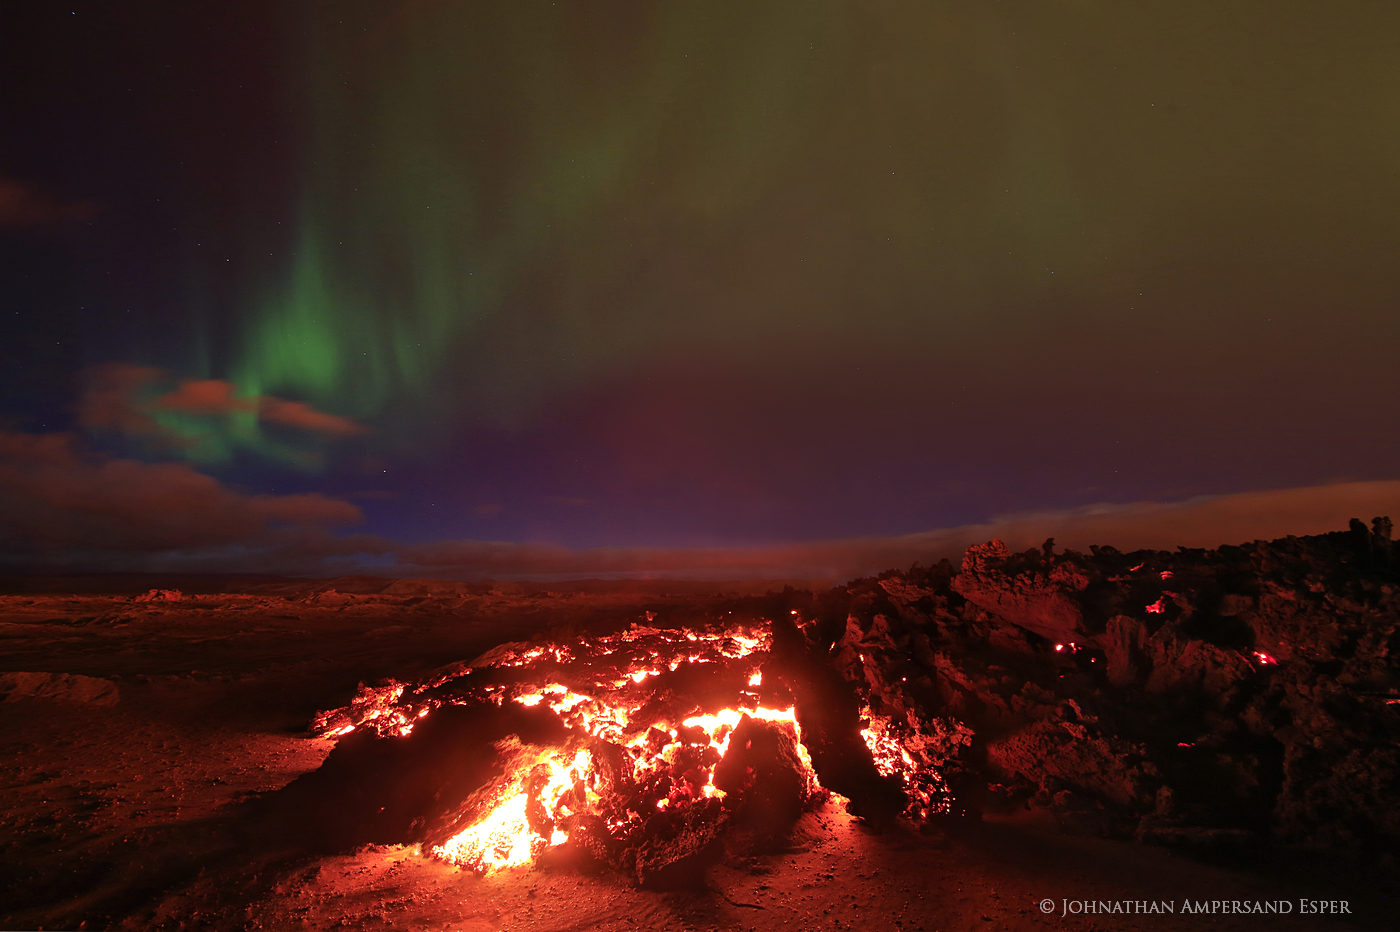 2014, Baugur, Bárðarbunga, Holuhraun, Iceland, aurora borealis, crater, erupting, eruption, flow, glow, lava, northern lights, red, red glow, sky, photo